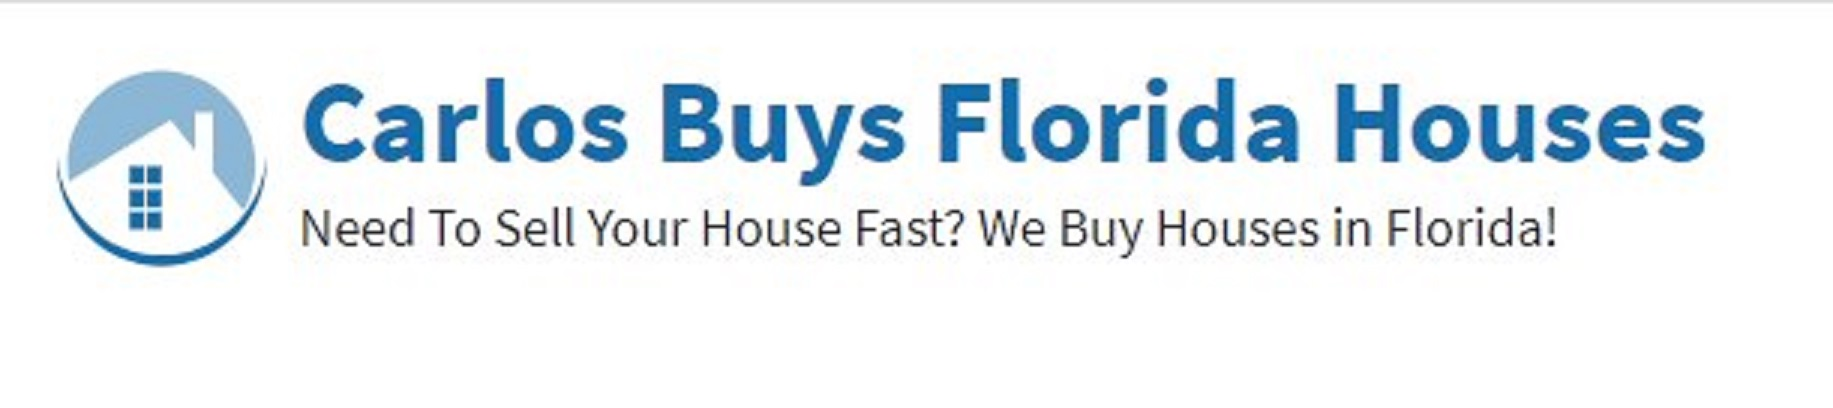 Carlos Buys Florida Houses